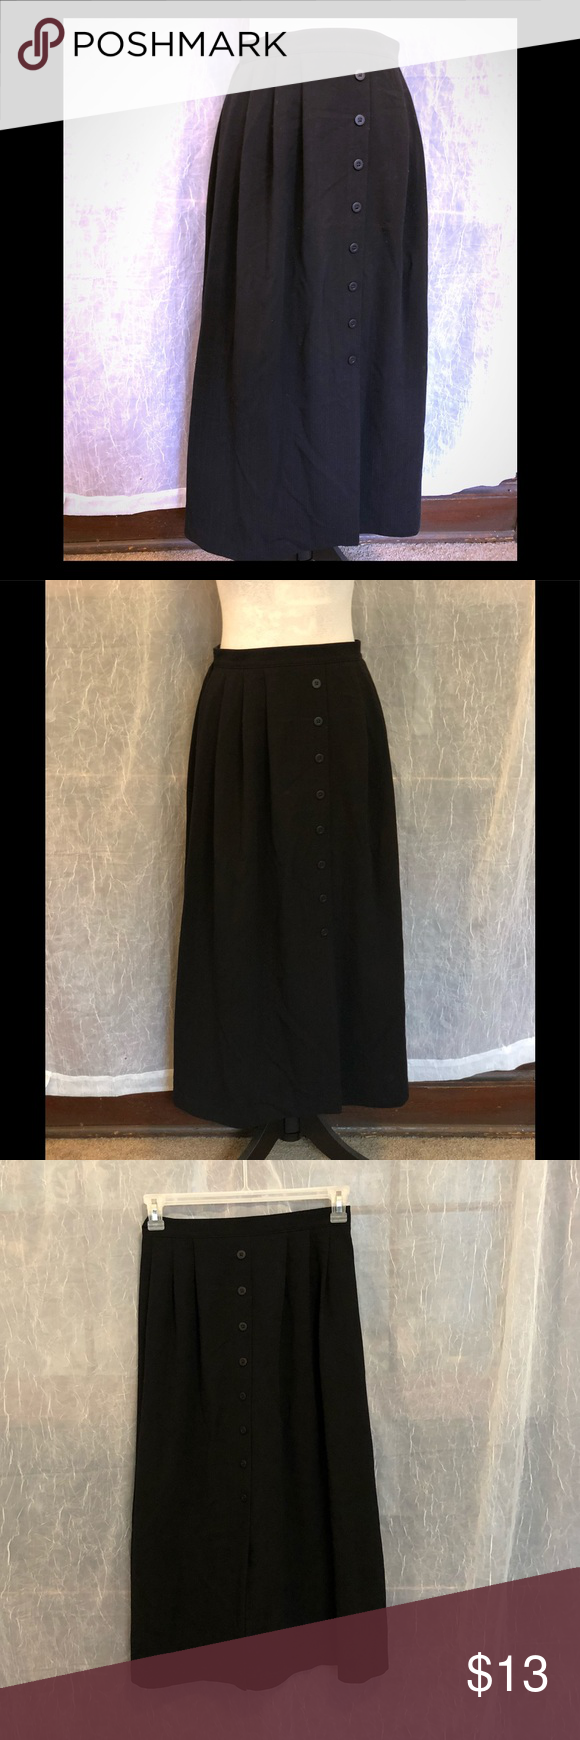 116e5295e Alfred Dunner Black Maxi Skirt Size 12 Maxi skirt. Back of waist is elastic.  Small slit in front . In great condition. 33